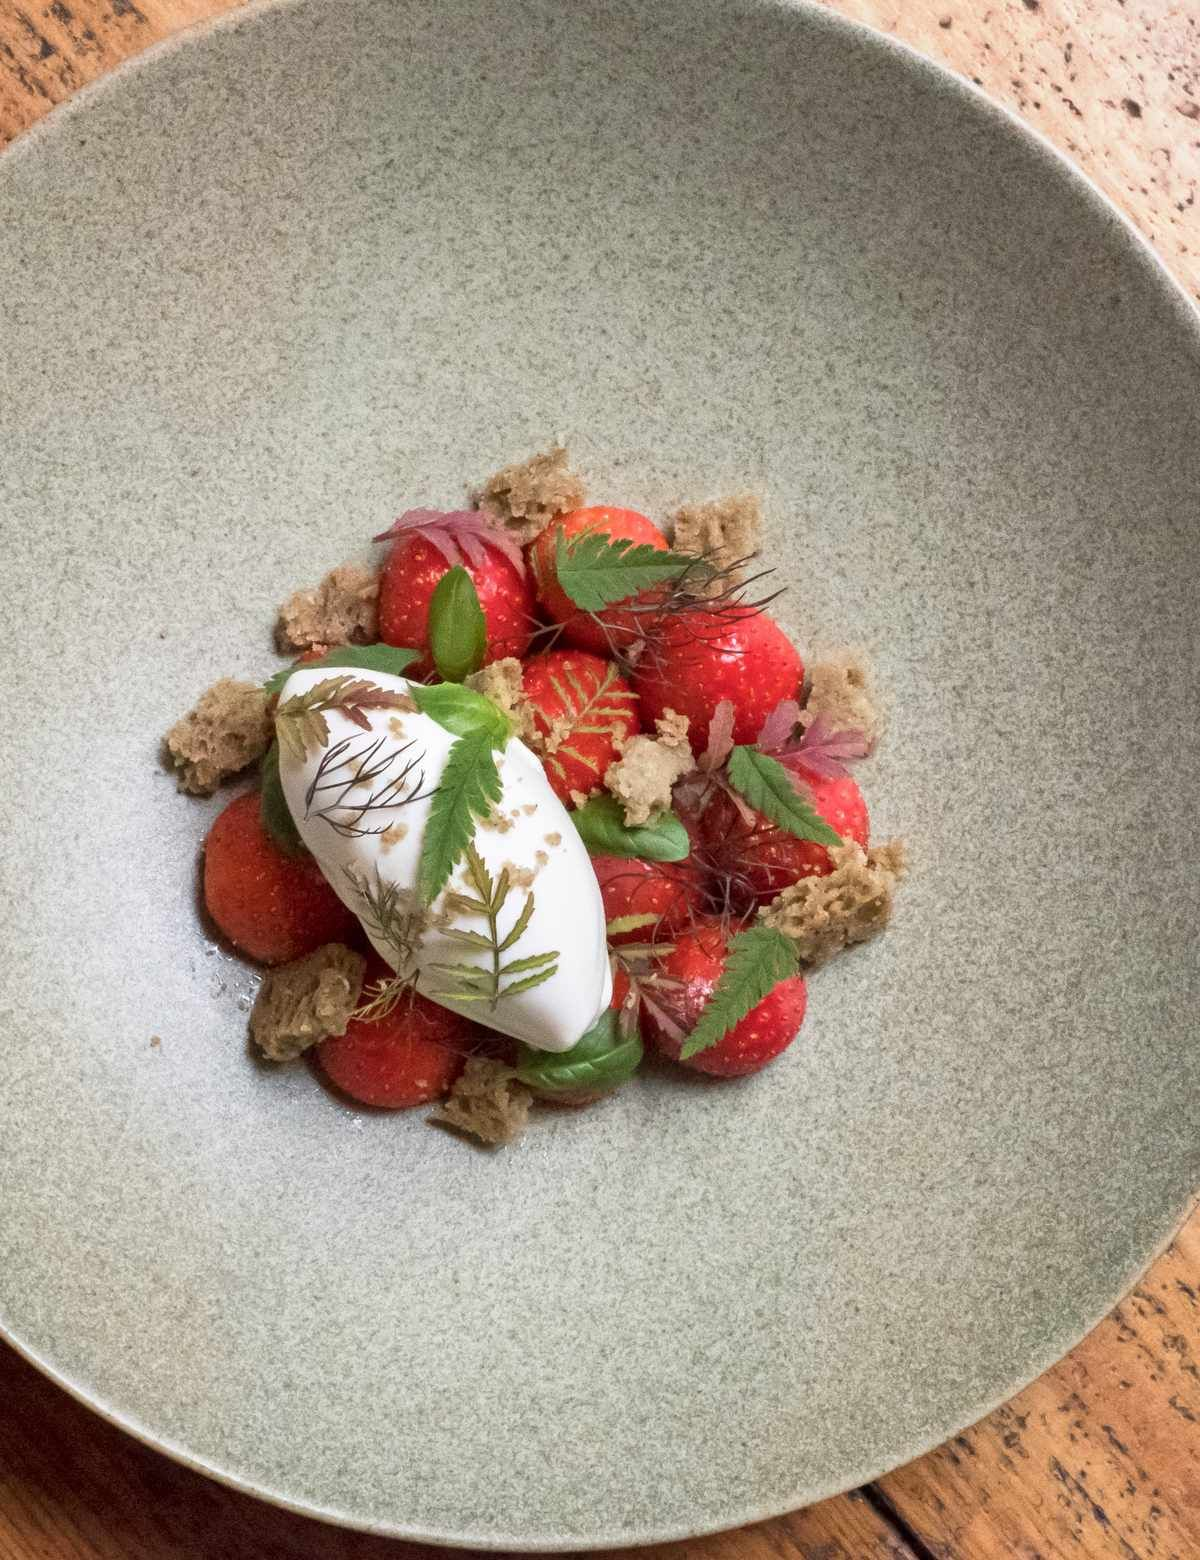 Tommy Banks' strawberries with herbs and hay Recipe in